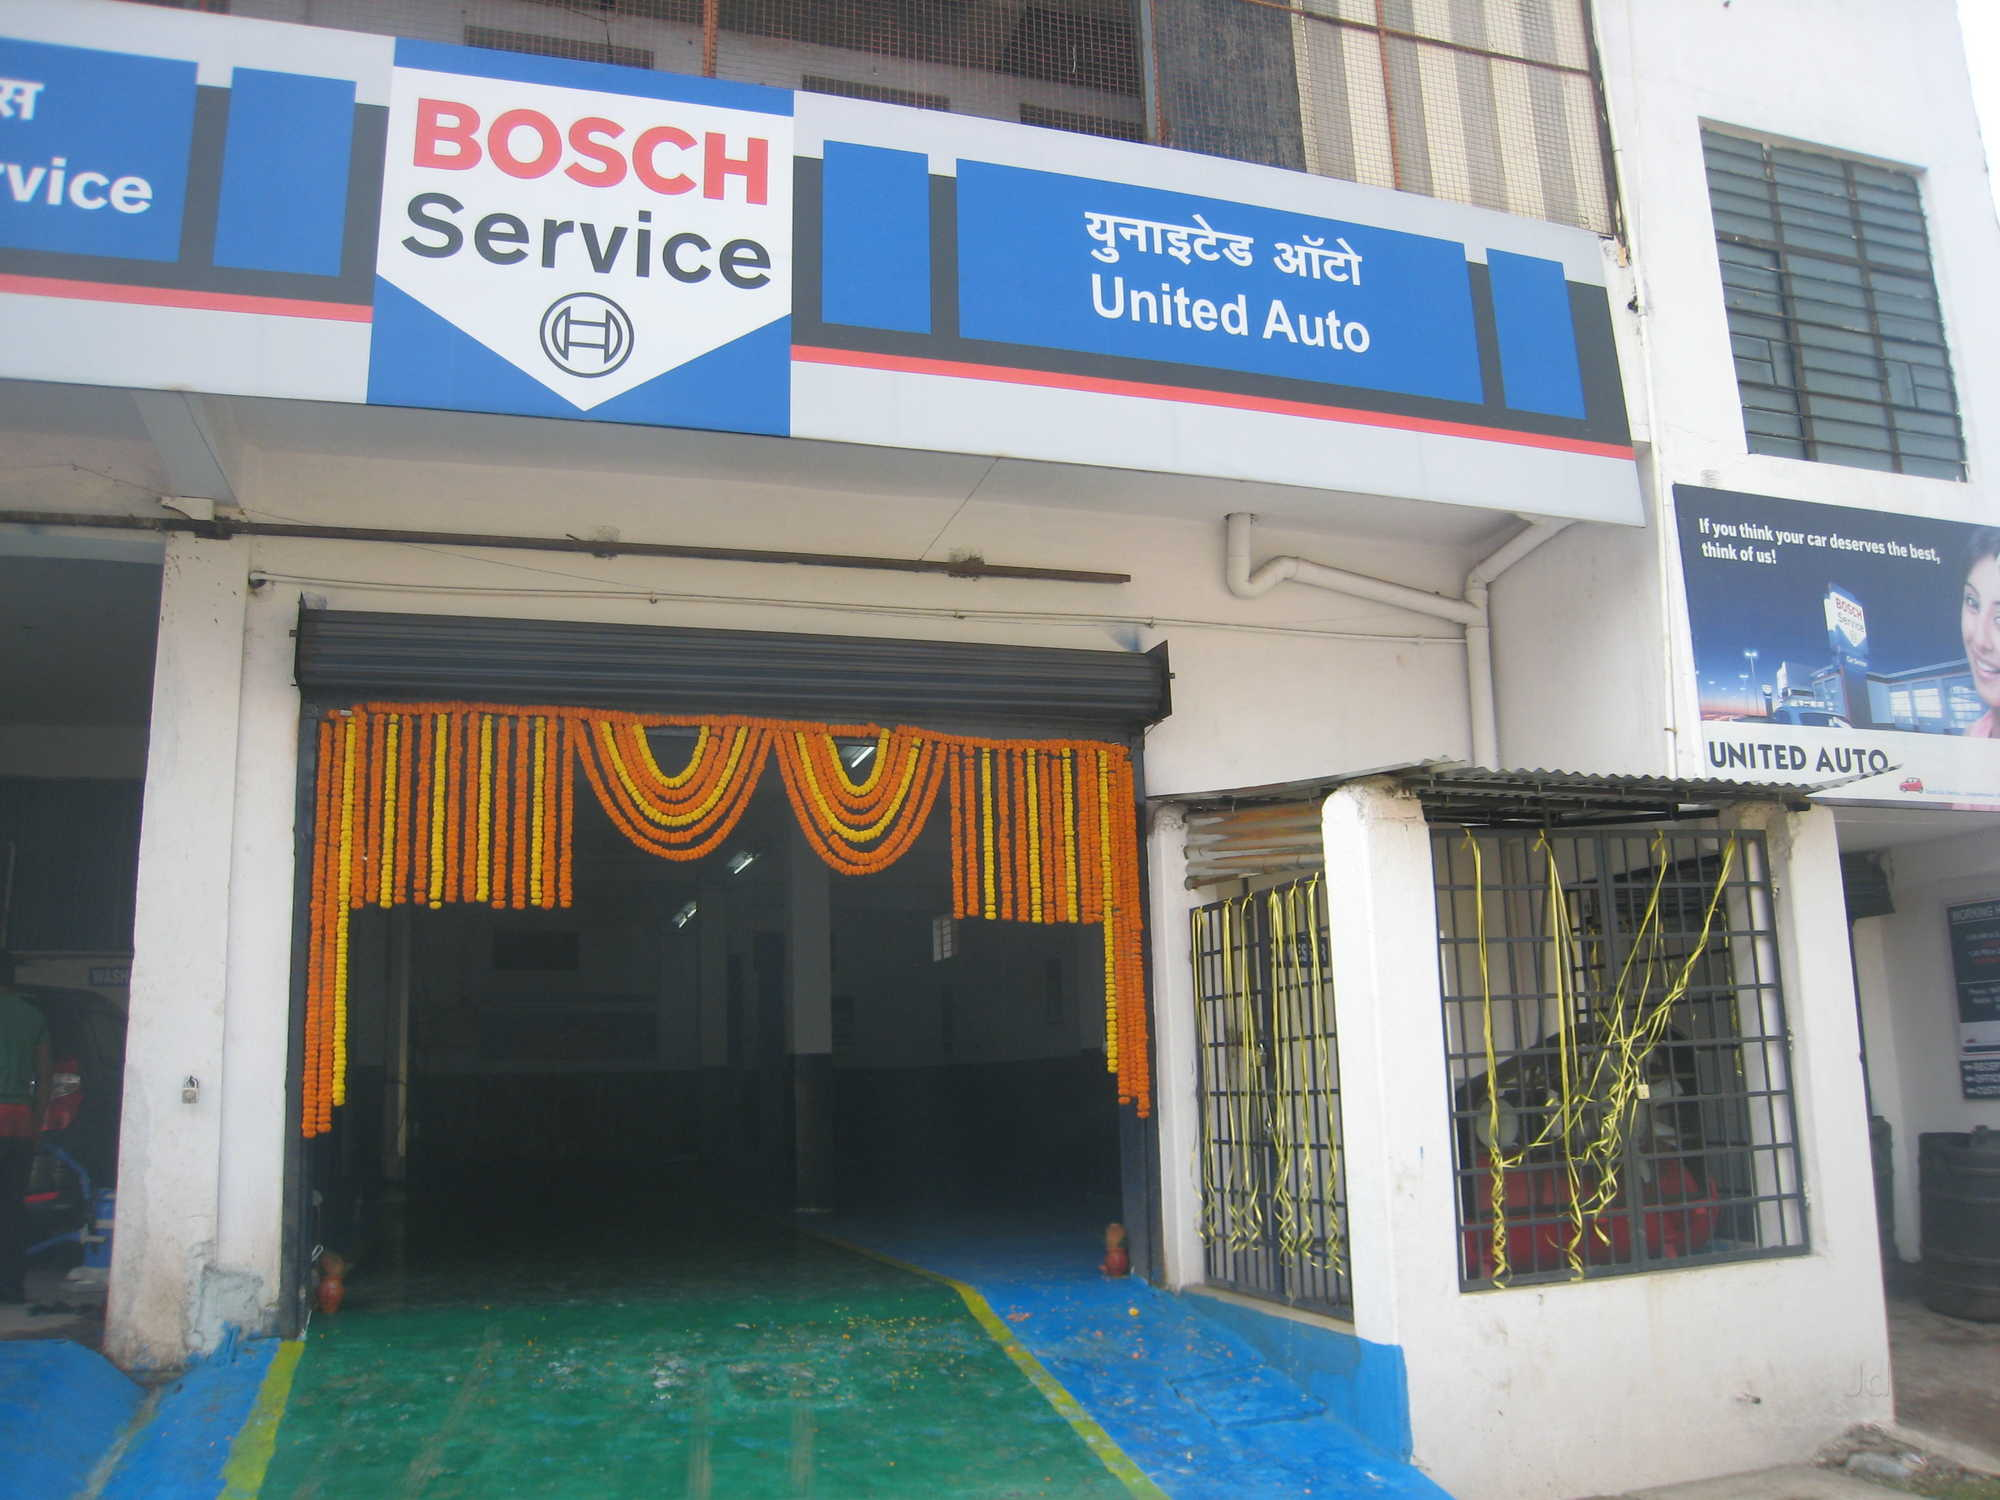 United Auto Bosch Car Service Center Burma Mines Car Repair Services In Jamshedpur Justdial